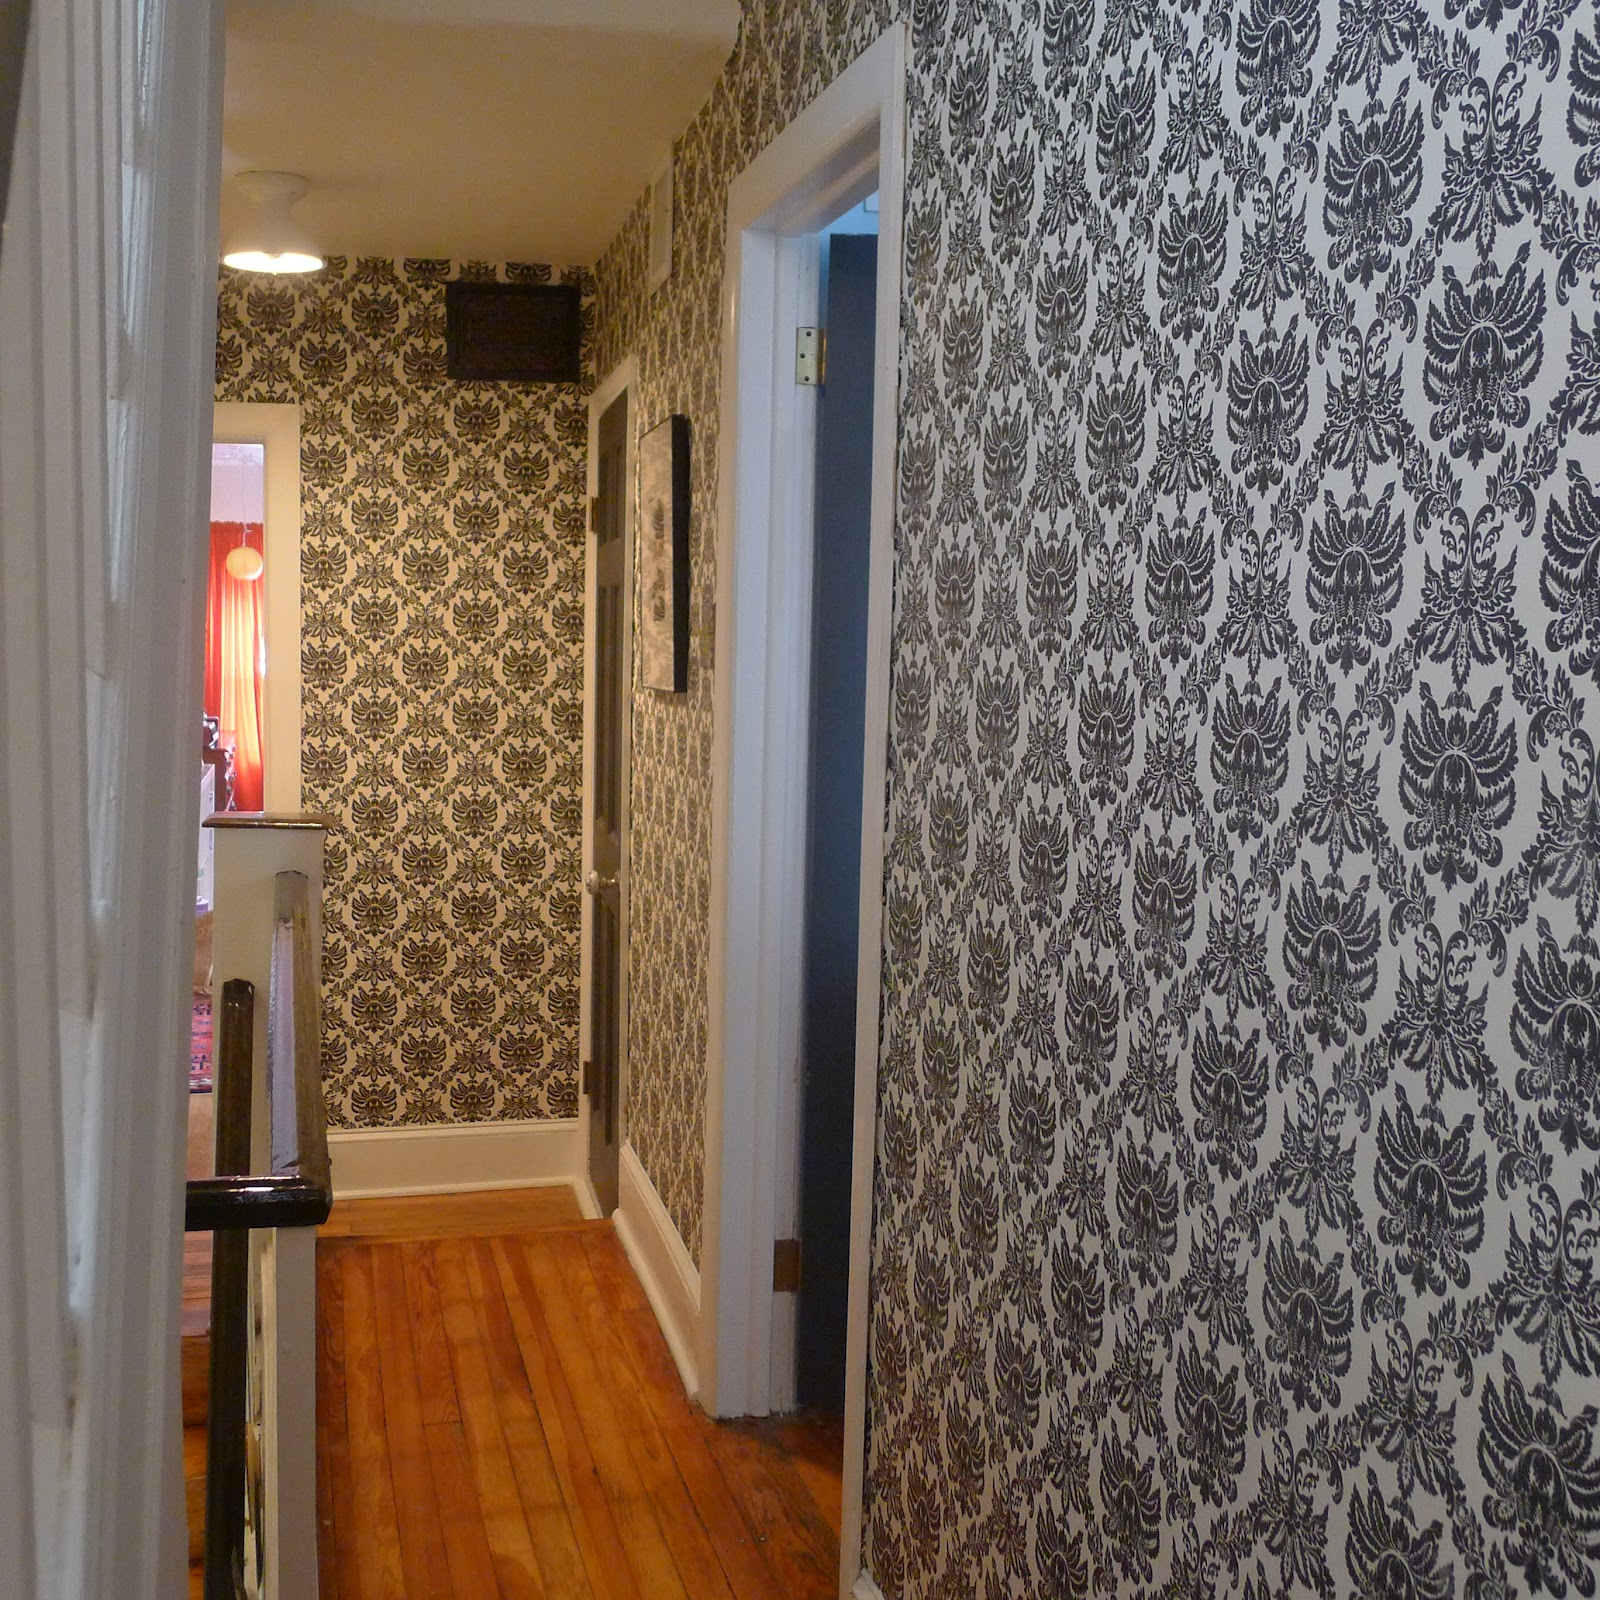 New Entrance Hall Design Ideas About Trends 2017: Wallpaper For Hall